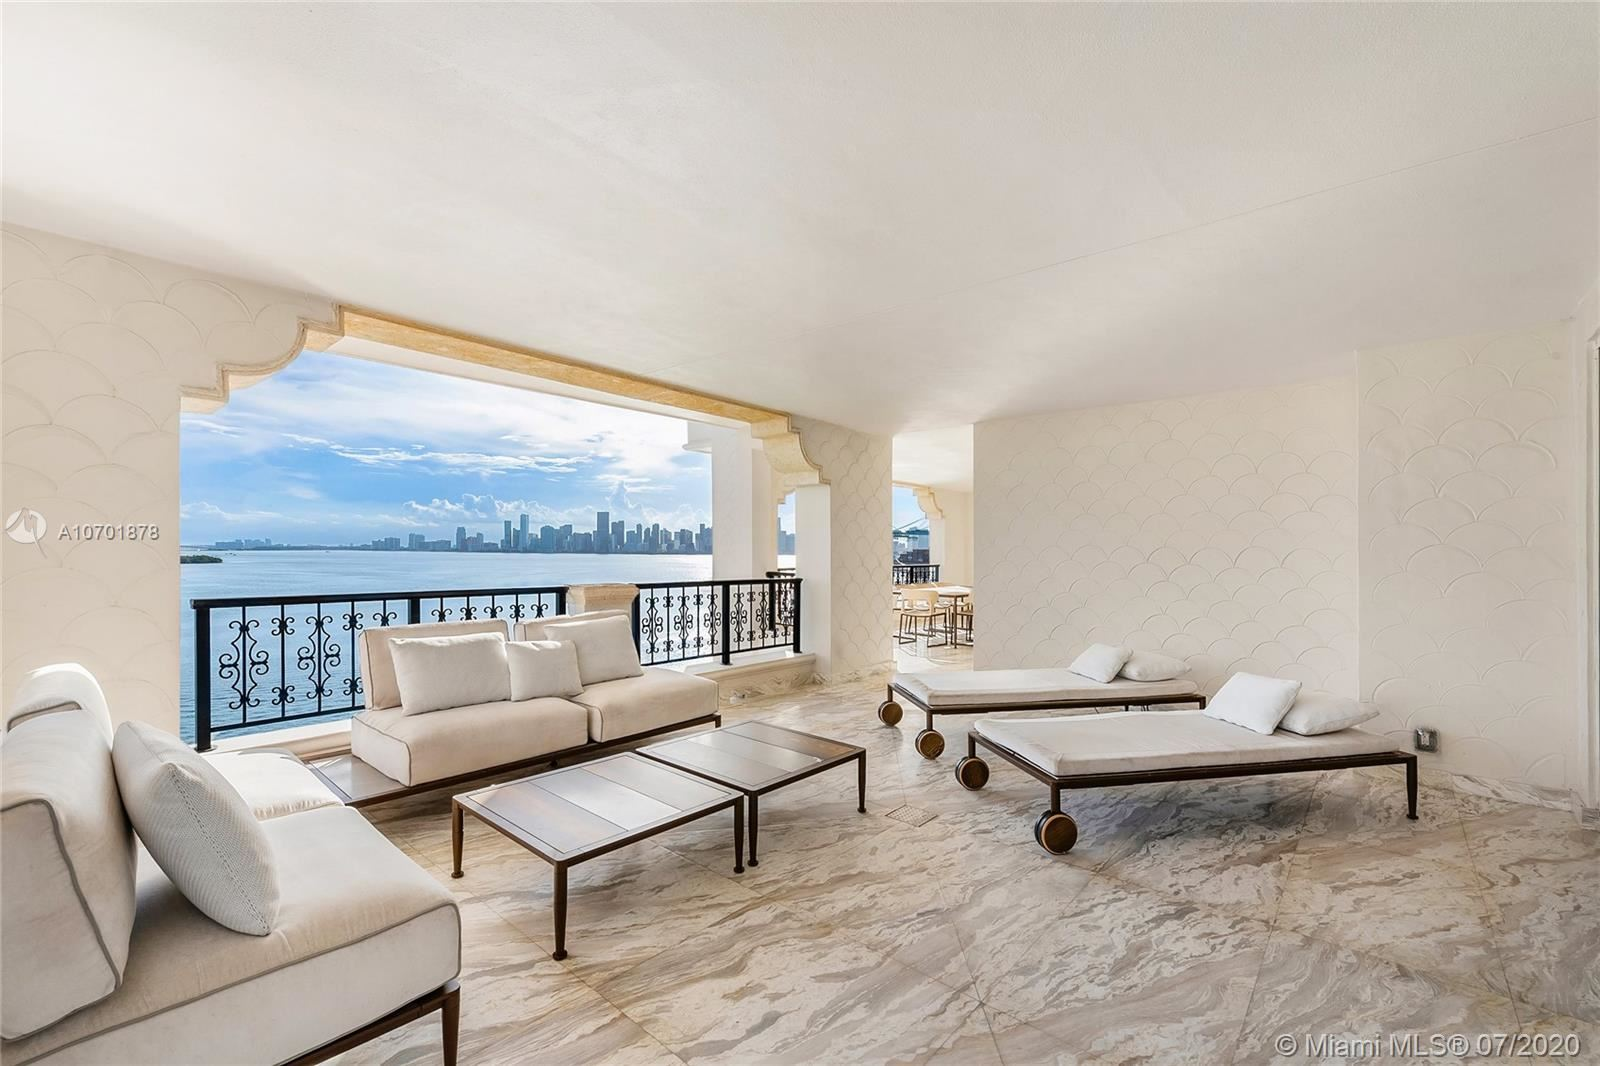 Photo 13 of Listing MLS a10701878 in 5292 Fisher Island Dr #5292 Miami FL 33109